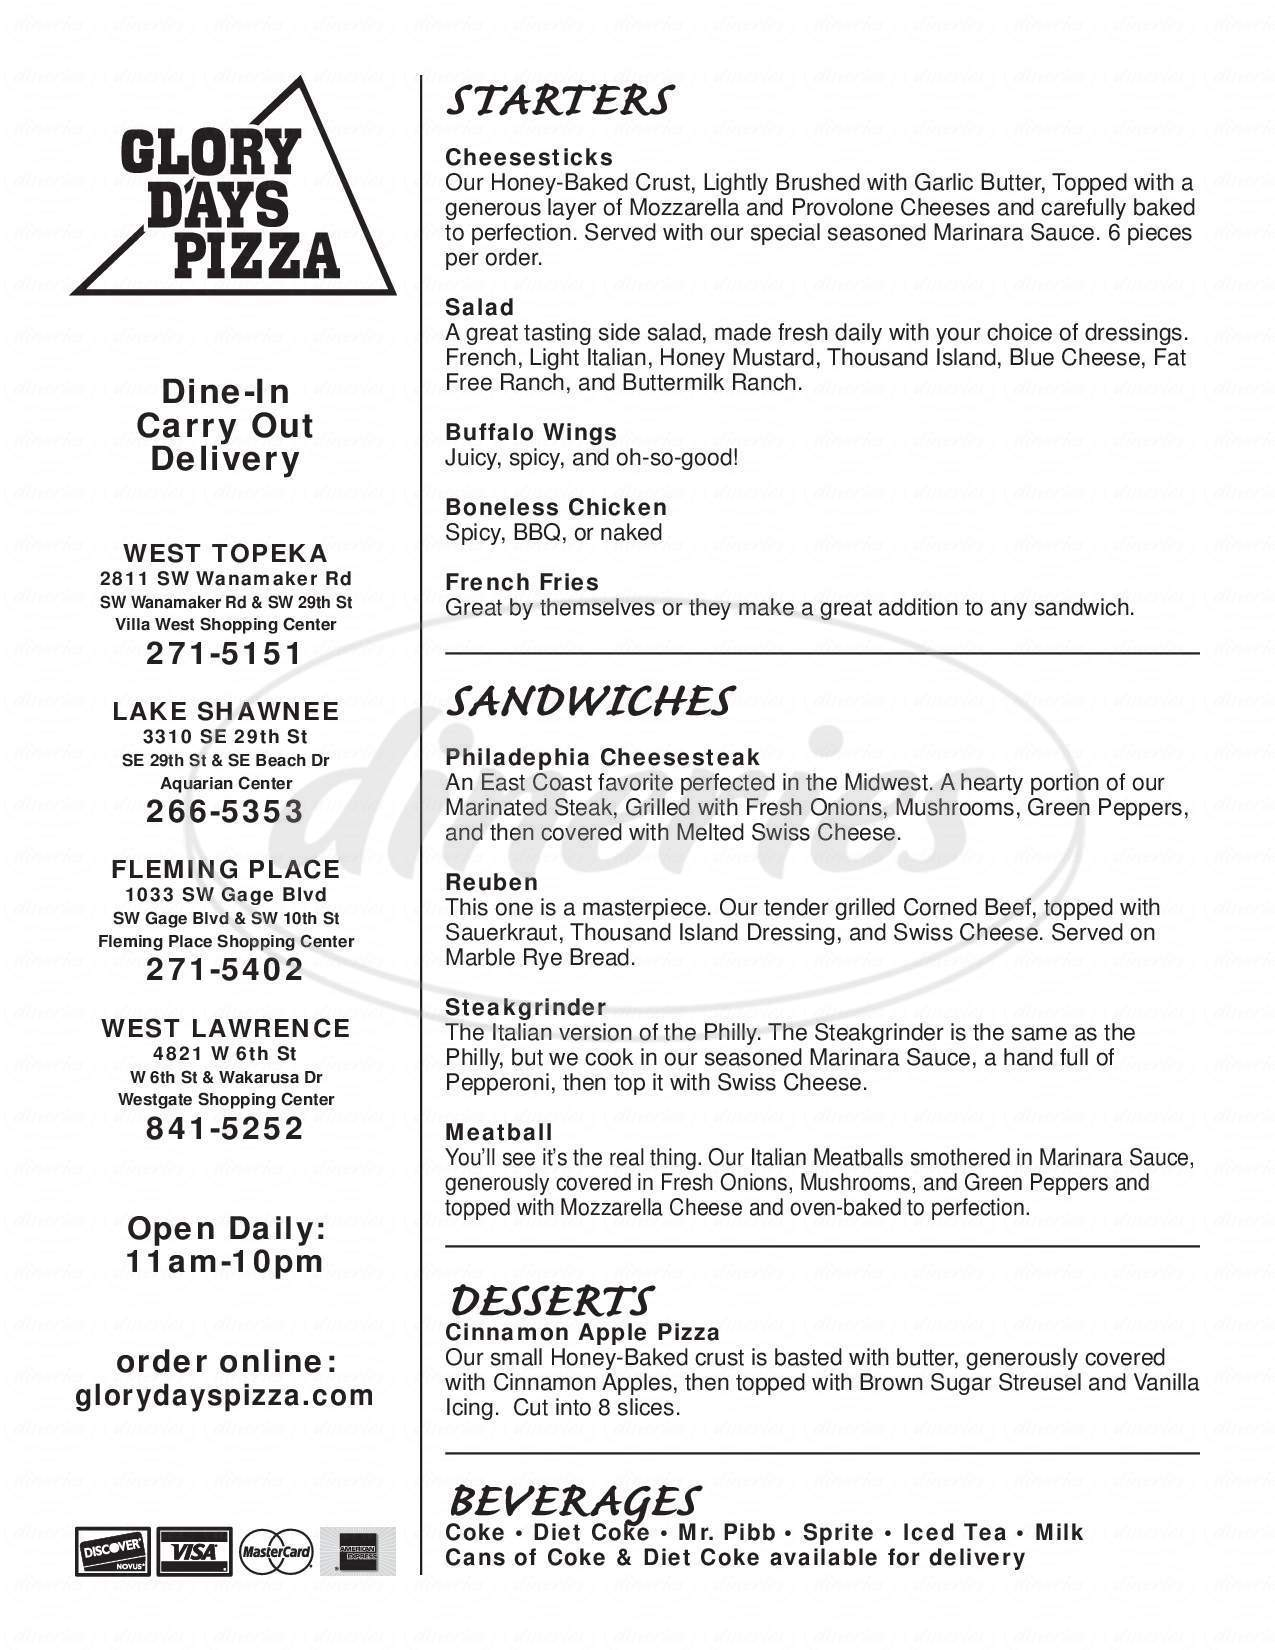 menu for Glory Days Pizza